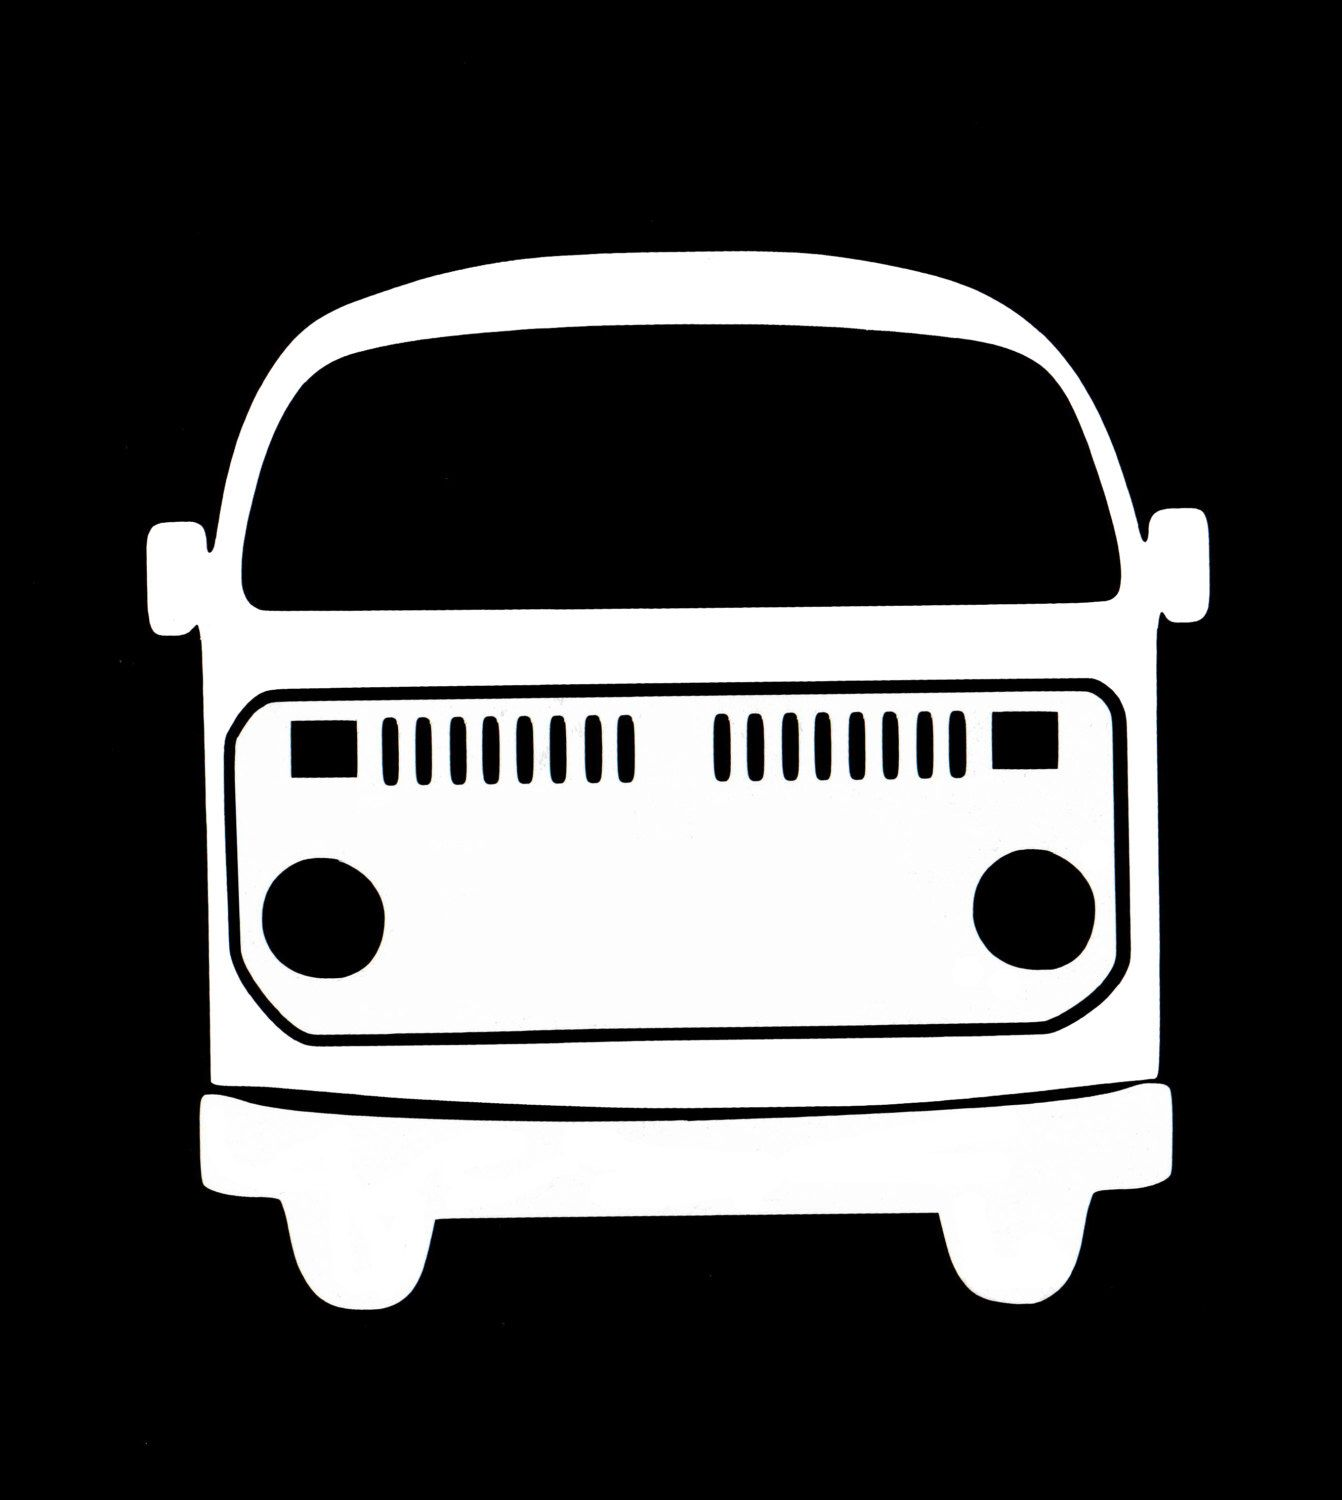 Volkswagen Vw Bus Type 2 Vinyl Decal Sticker By Thestickermaker On Etsy Https Www Etsy Com Listing 490001750 V Vinyl Decal Stickers White Stickers Volkswagen